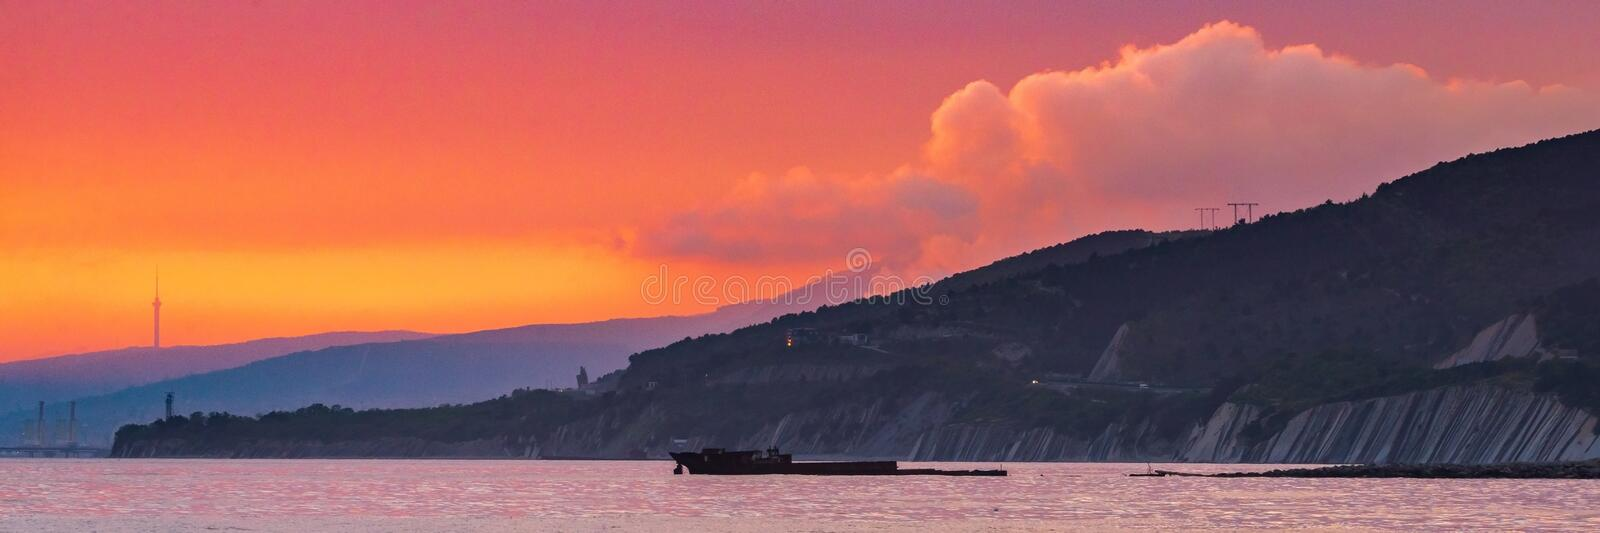 Bright red sunset sky over city and mountains stock images